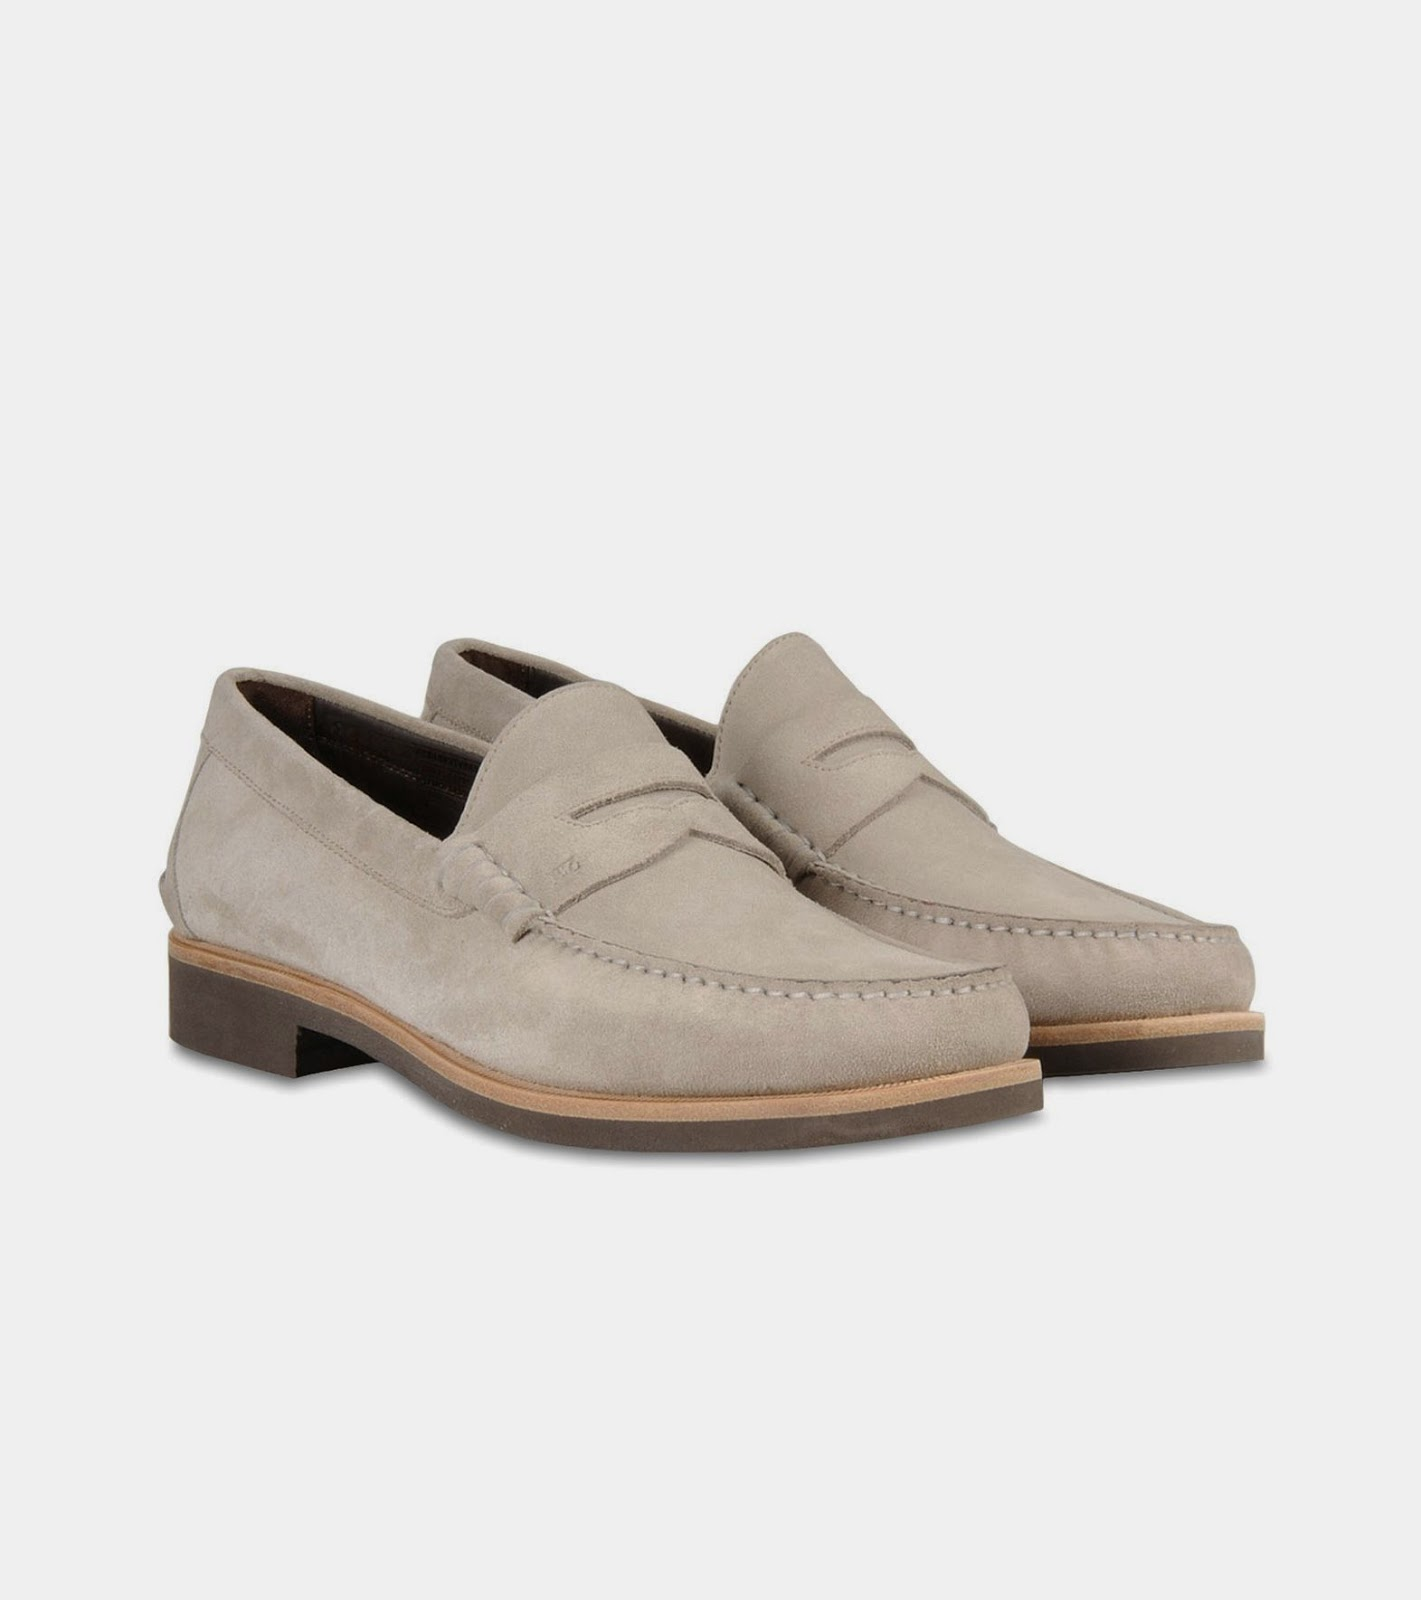 fortable white loafers crafted from beautiful suede on a leather welted and rubber sole 100 % leather